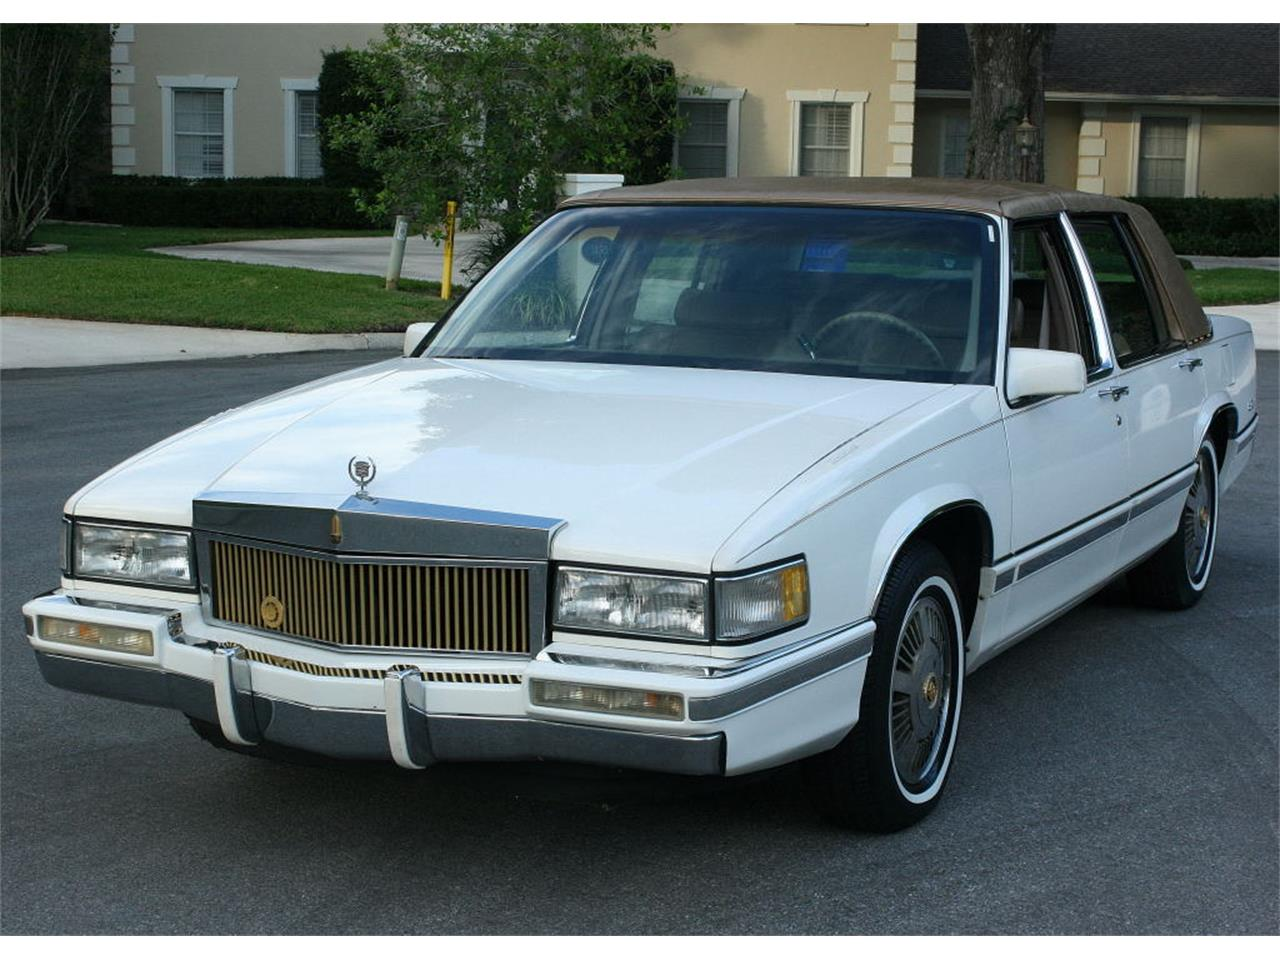 Large Picture of '91 Sedan - $9,500.00 Offered by MJC Classic Cars - L5XM